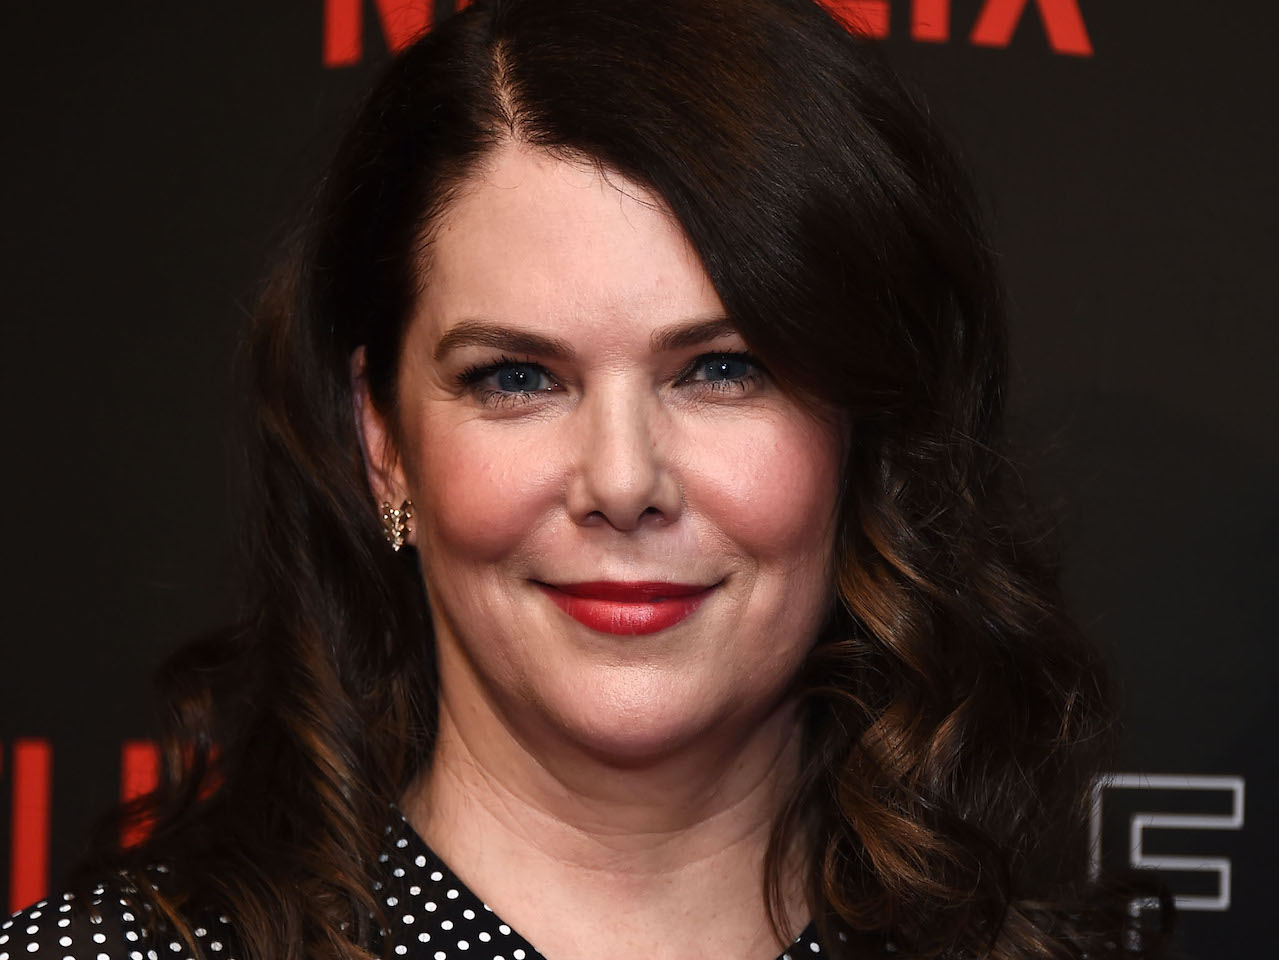 Lauren Graham nudes (19 photos), Tits, Hot, Twitter, legs 2018